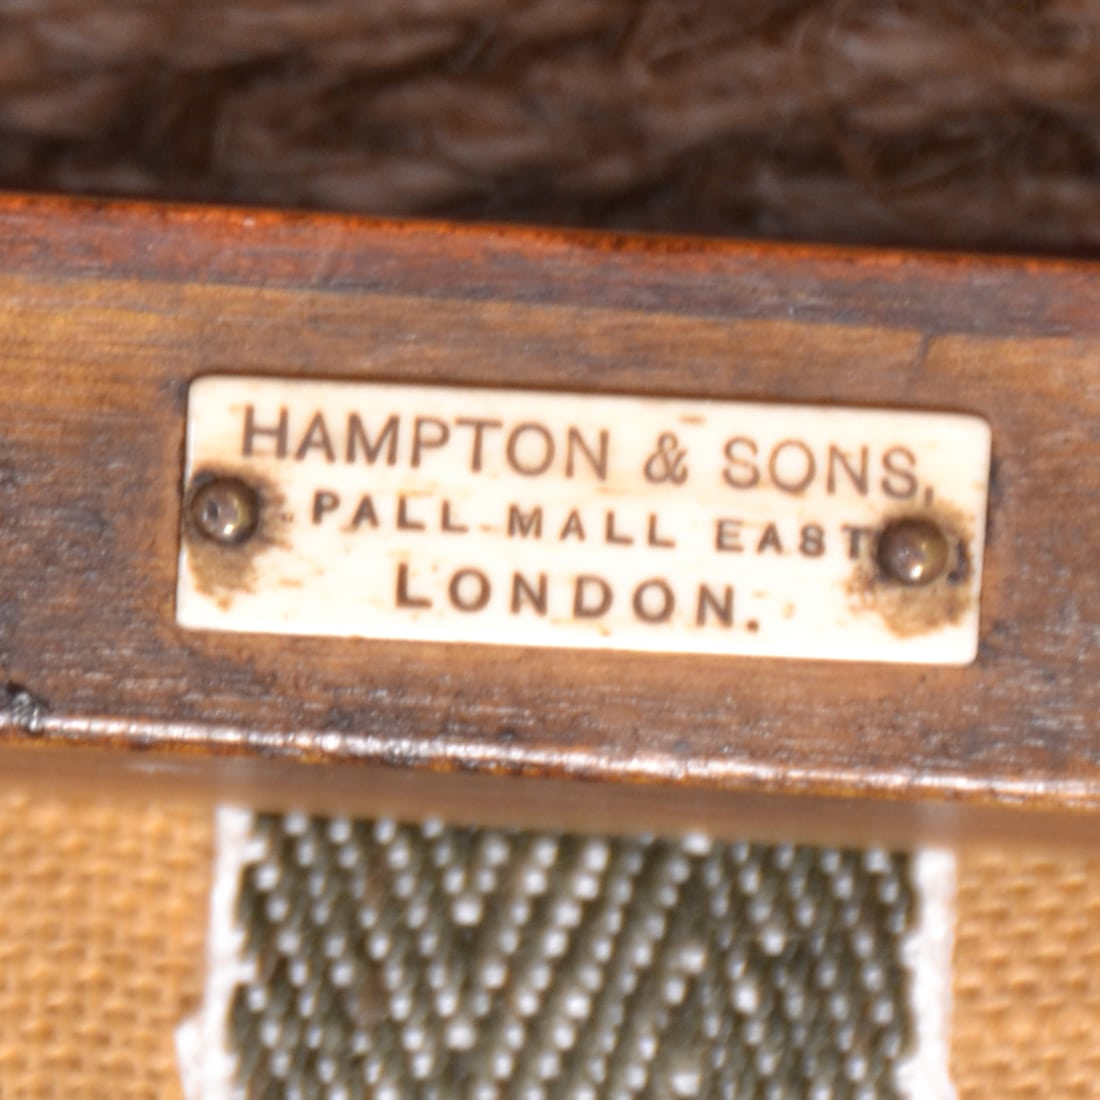 Hampton & Sons label Pall Mall East London ca. 1880